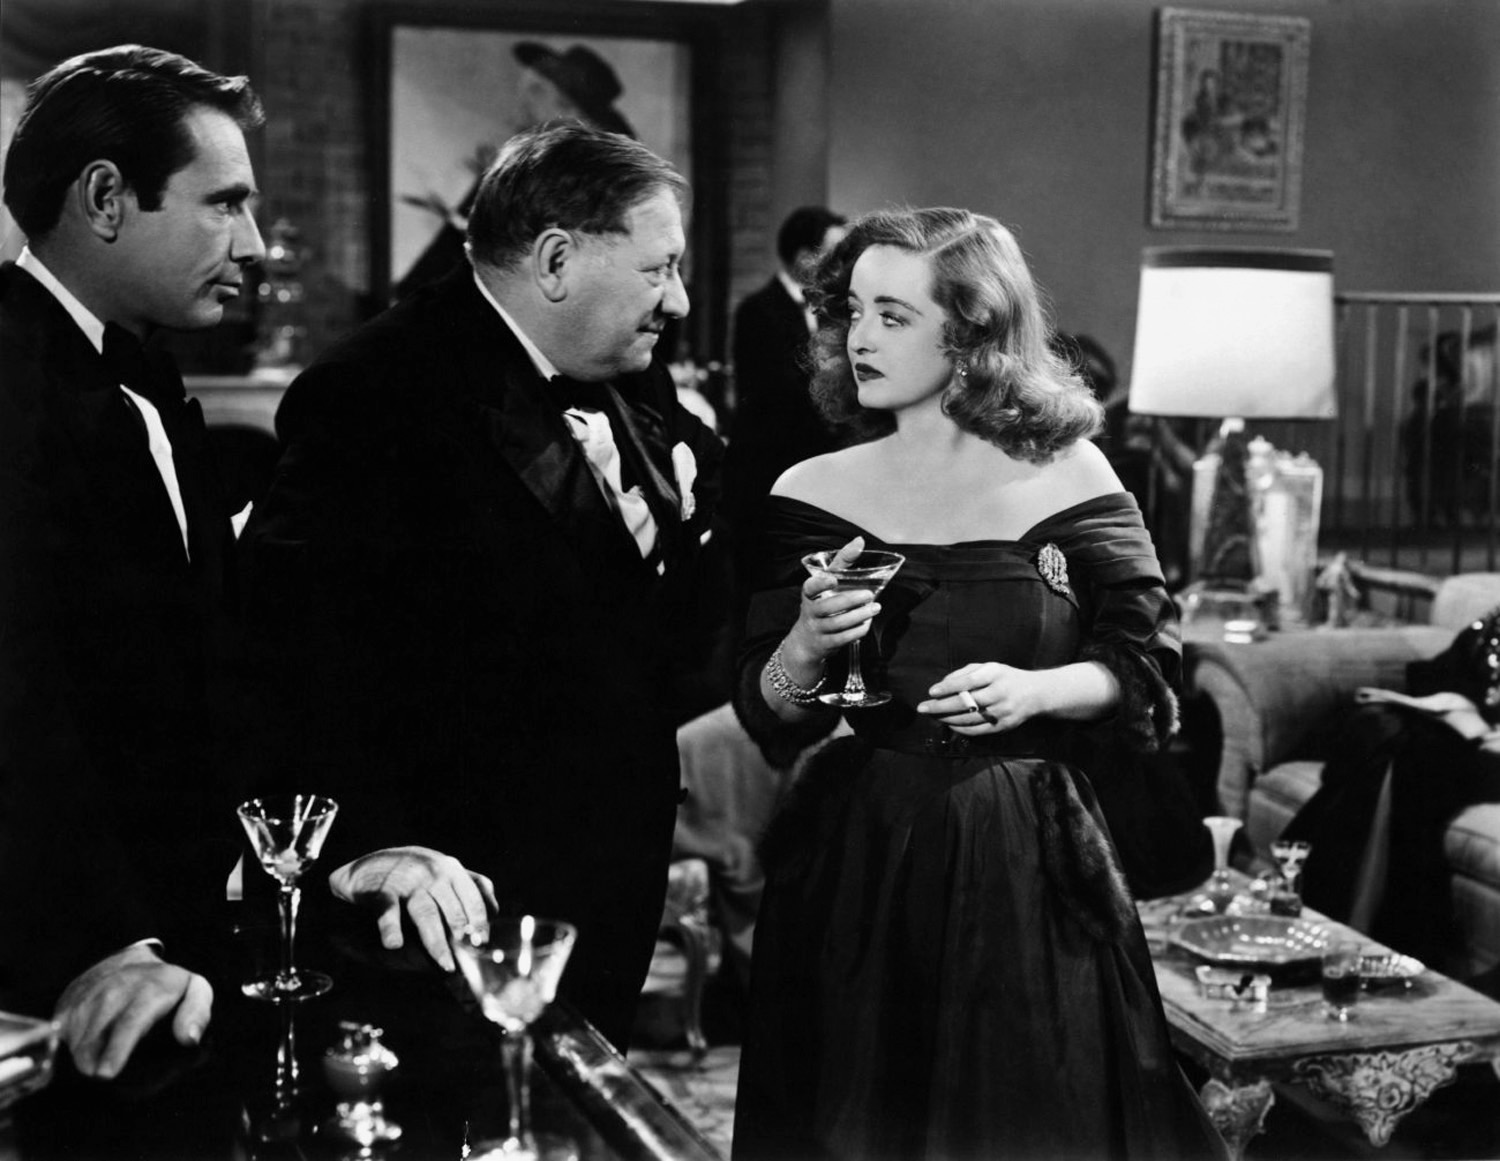 all about eve Find great deals on ebay for all about eve in dvds and movies for dvd and blu-ray disc players shop with confidence.